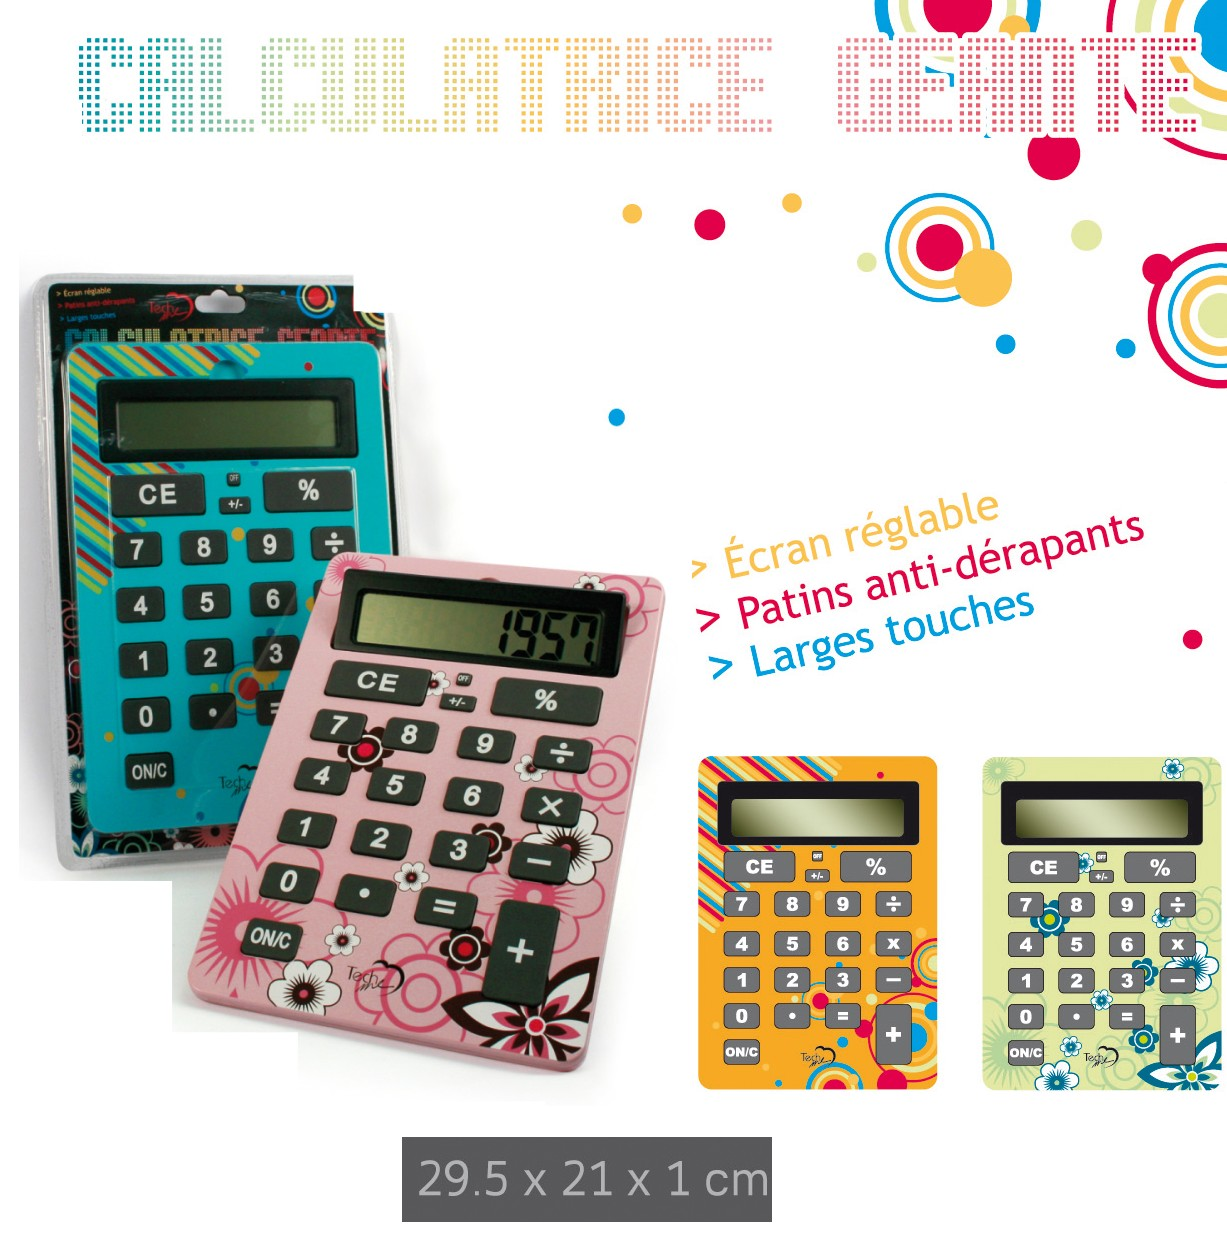 Calculatrice géante design